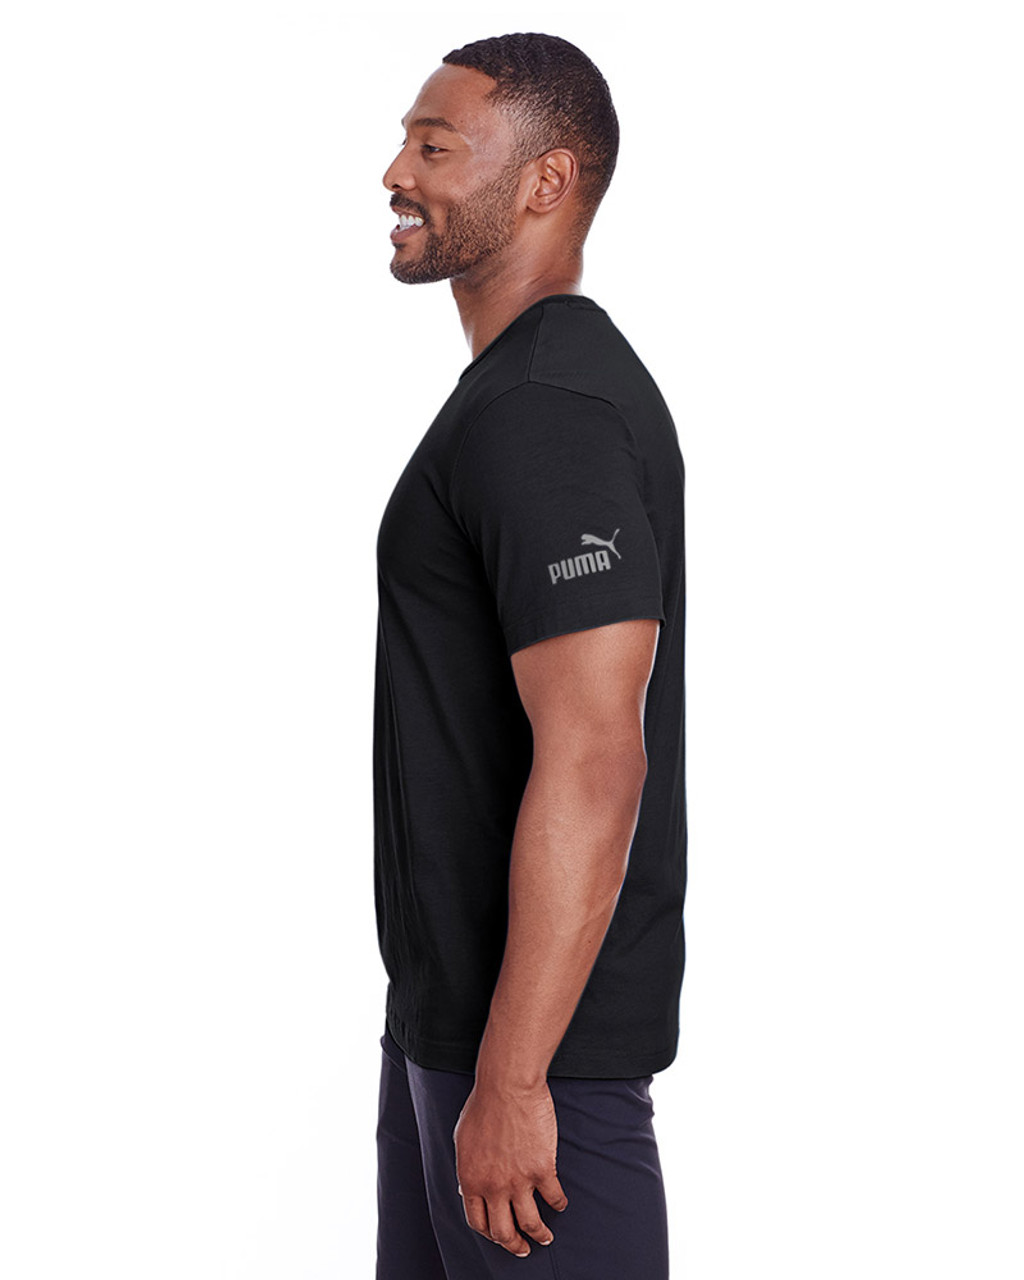 Puma Black/Quiet Shade - side, 582006 Puma Sport Essential Adult Logo T-Shirt | BlankClothing